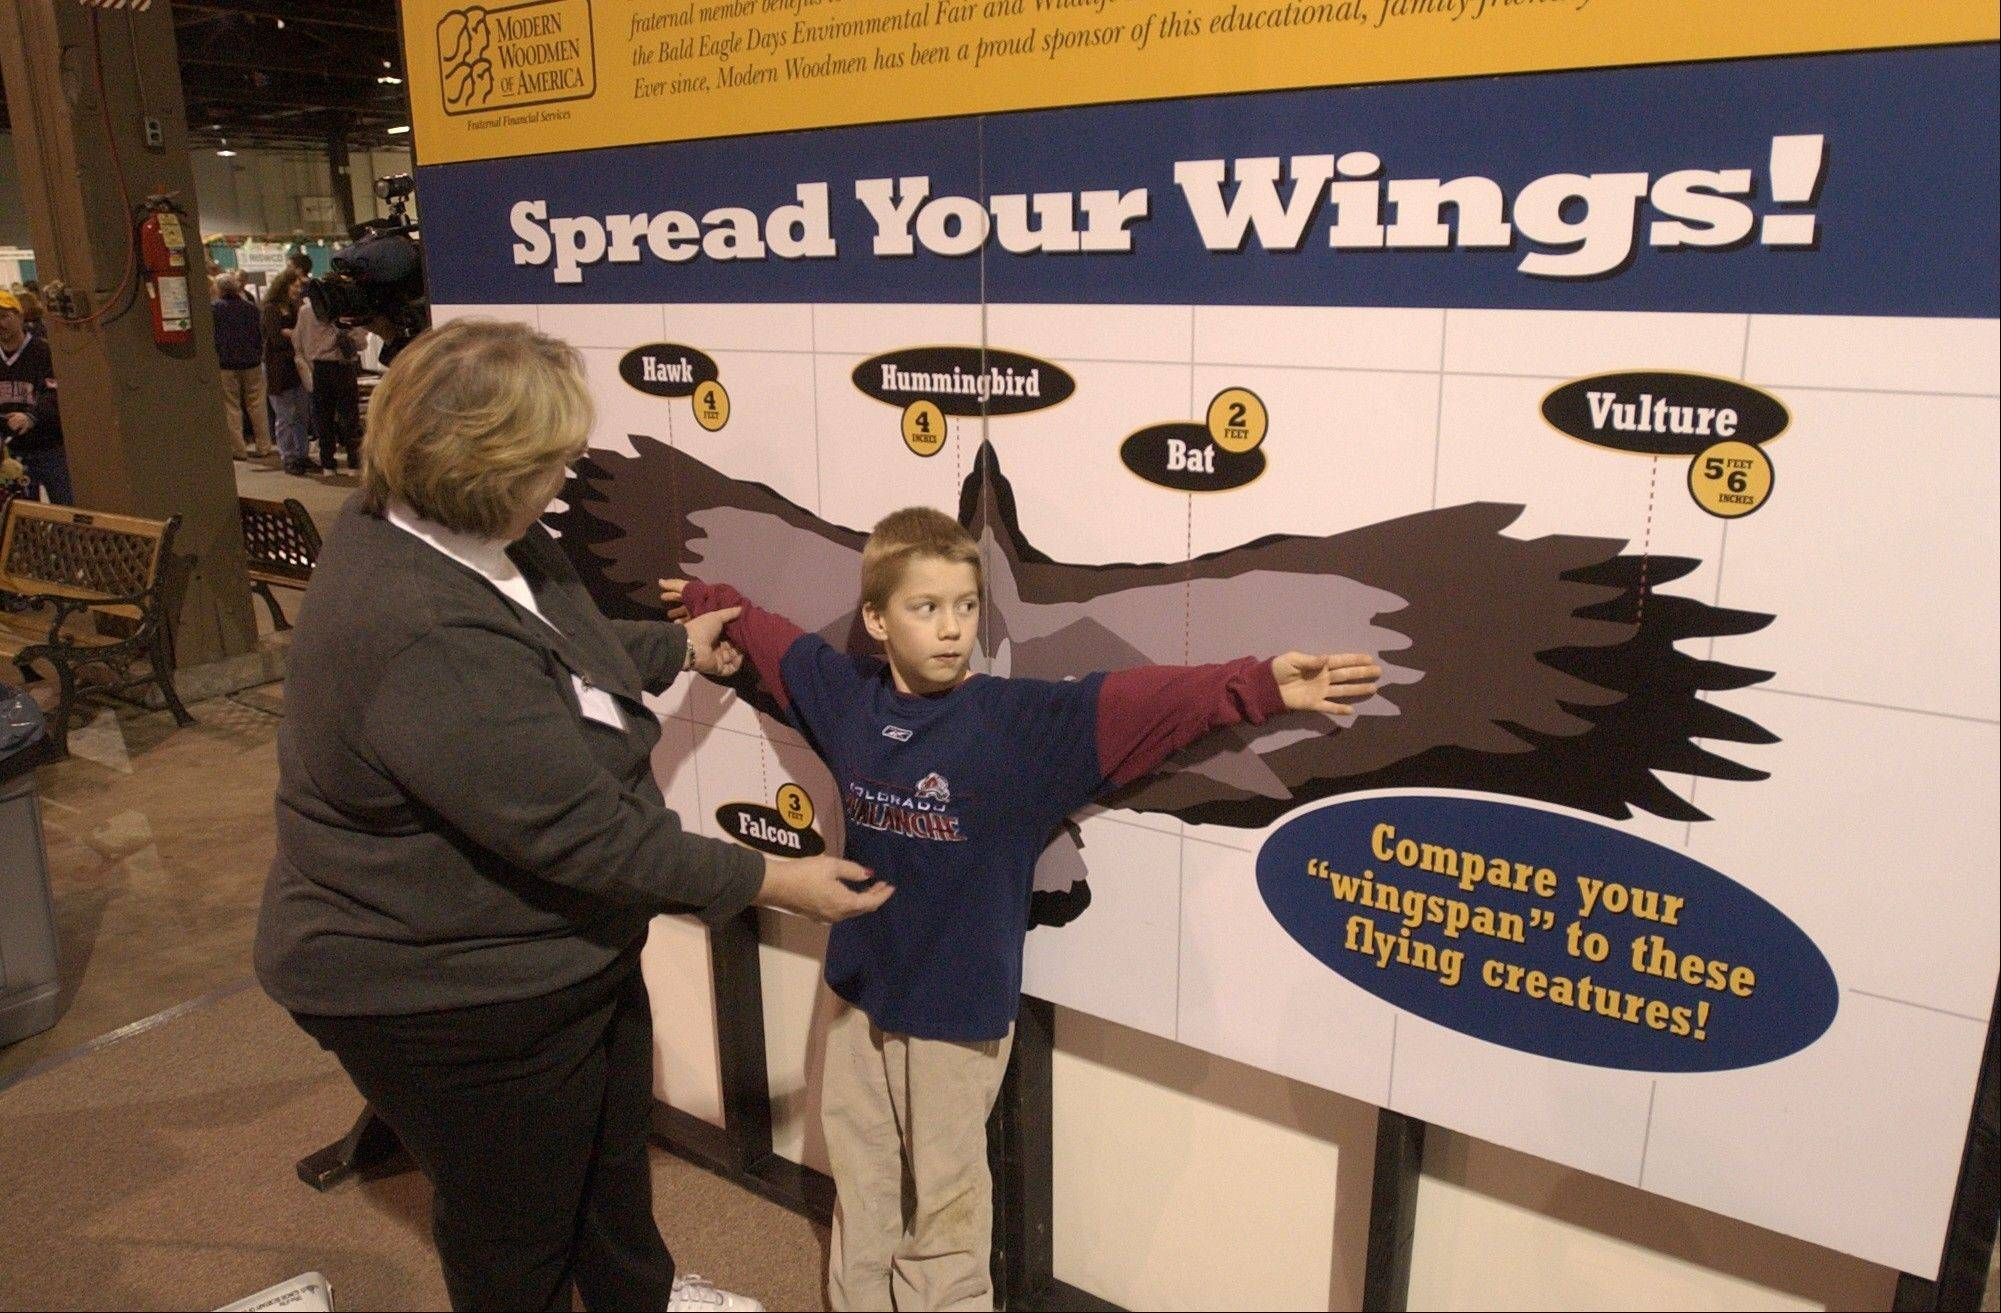 Families can learn a lot about birds of prey during Bald Eagle Days at the Quad Cities Expo Center, Jan. 11-13.